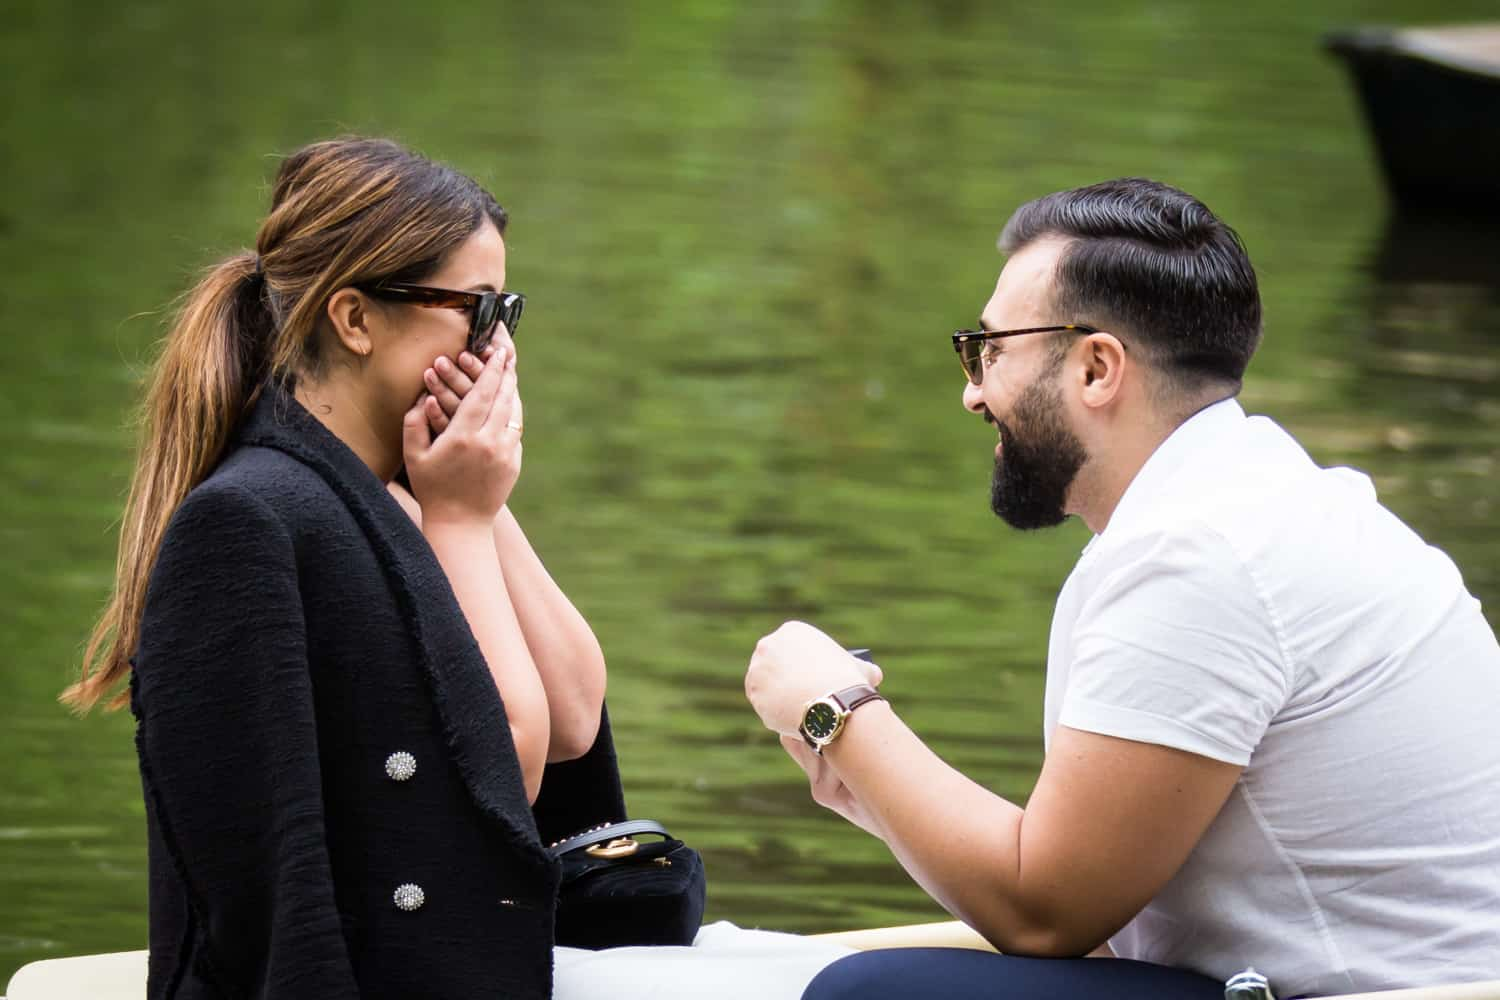 Woman gasping in surprise at a surprise proposal on Central Park Lake